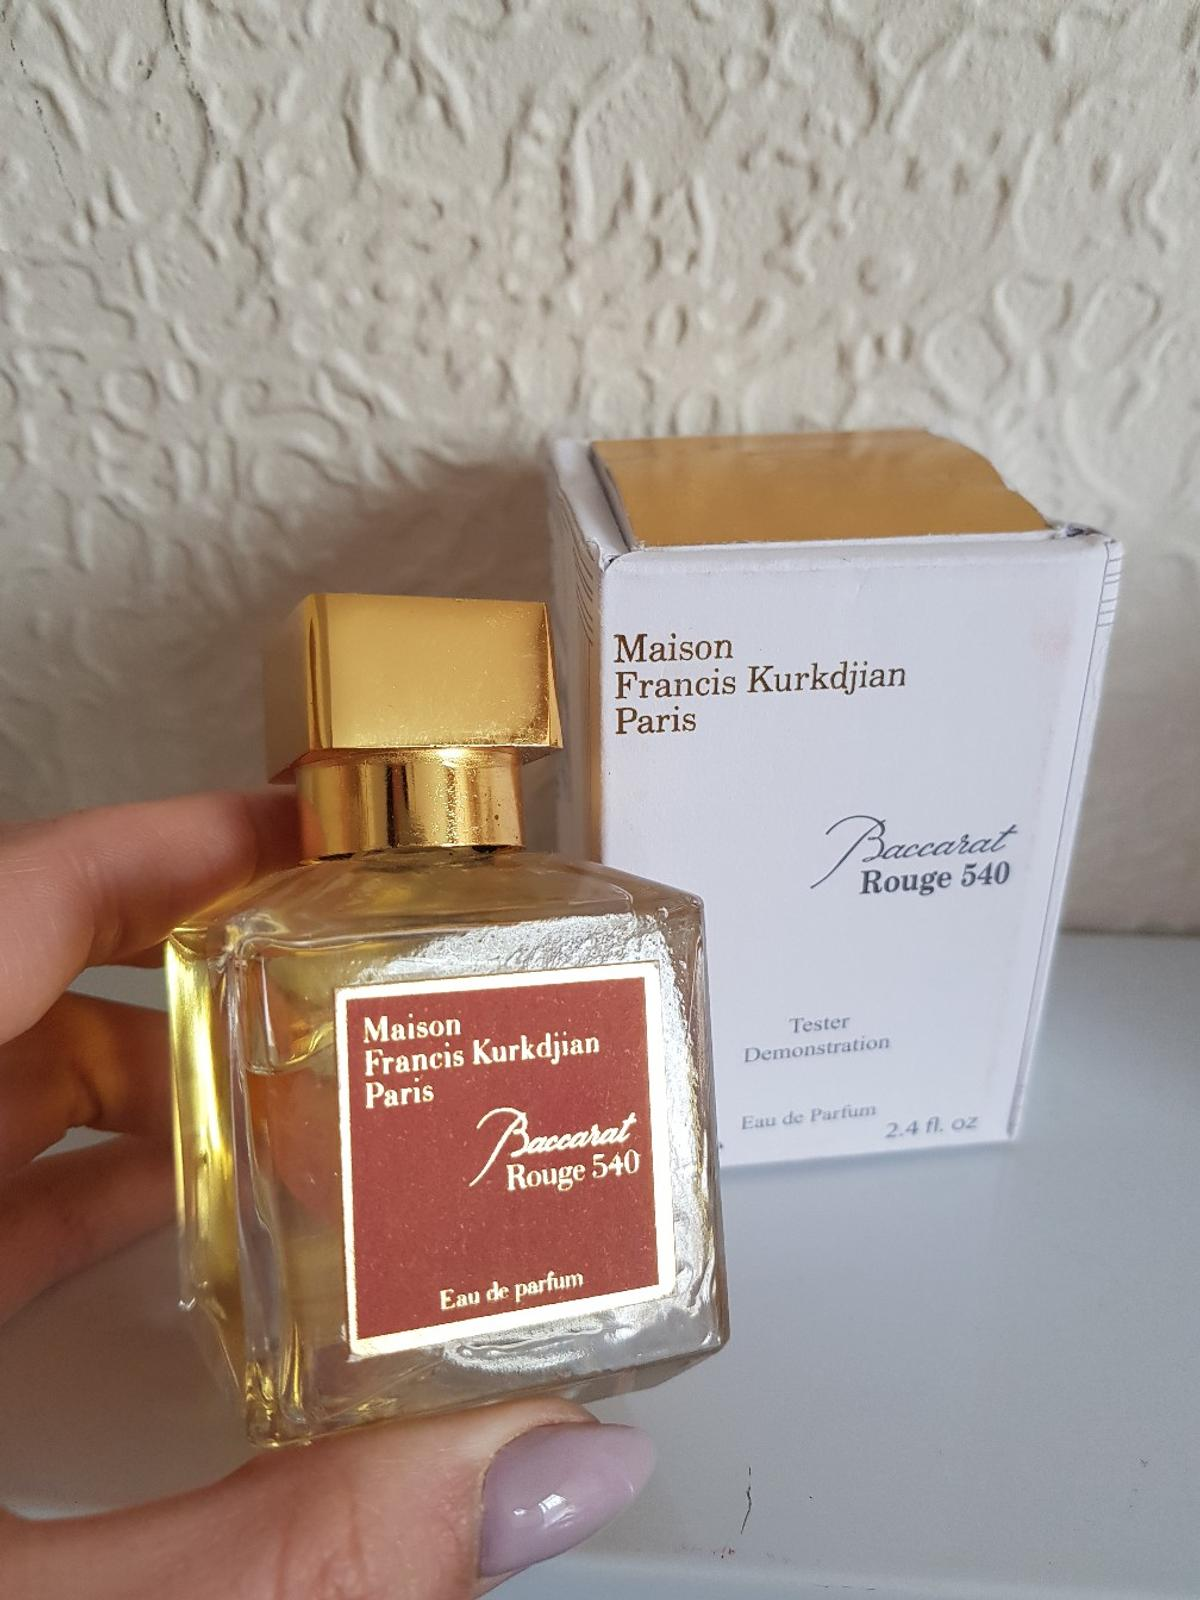 Maison Francis BACCARAT ROUGE 20 perfum in DY20 Dudley für 20,20 ...